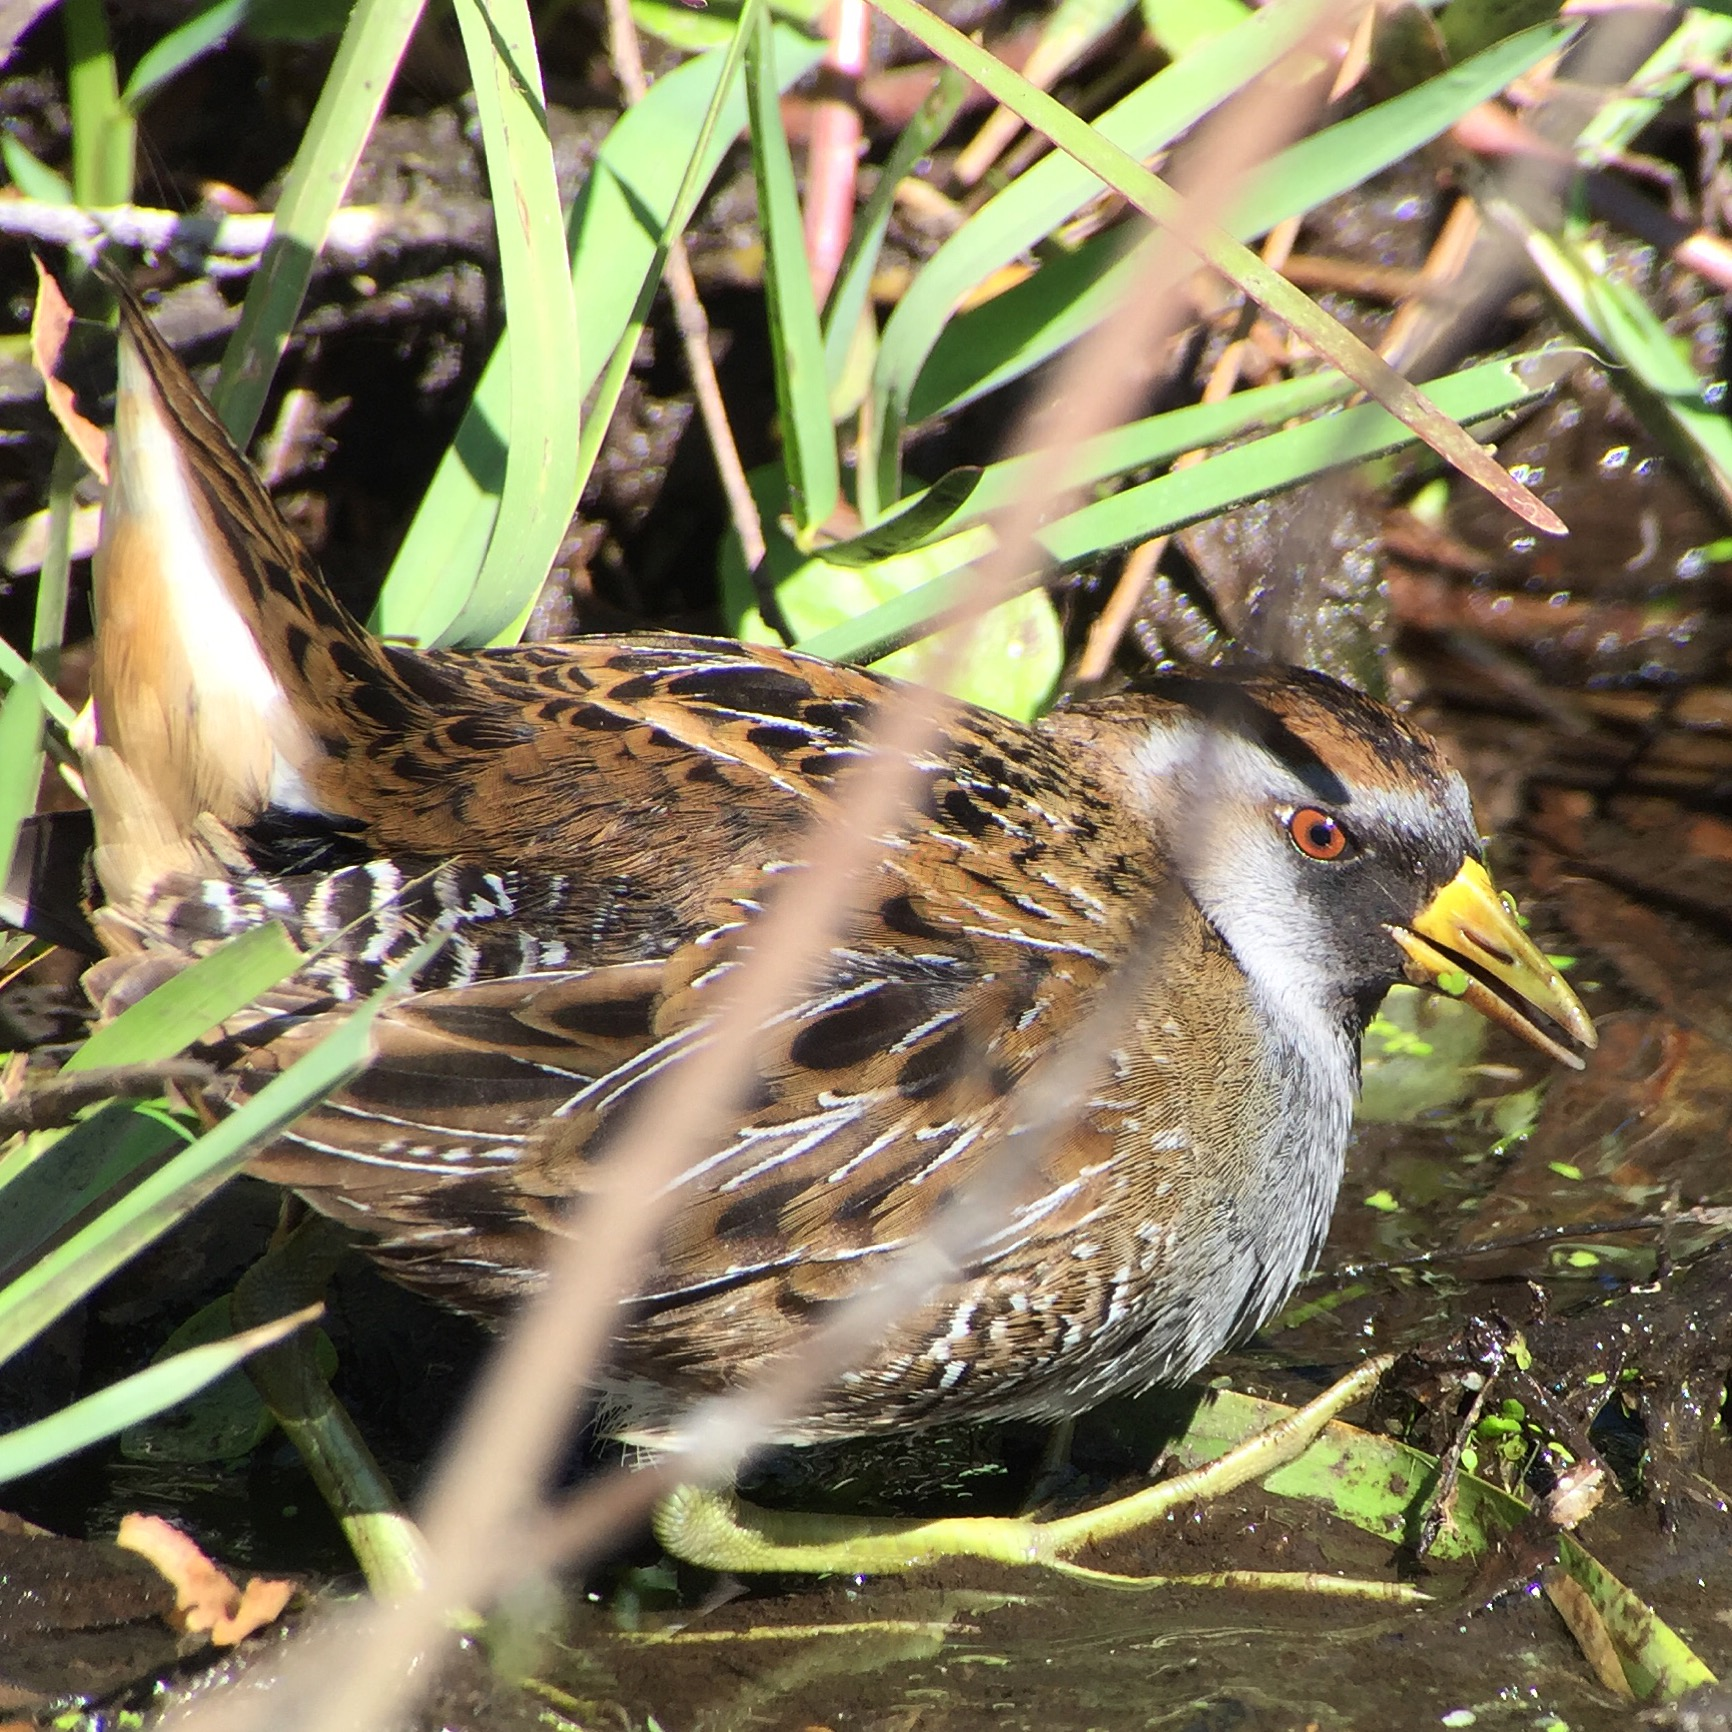 A Sora slipped out of the marsh for a few brief seconds earlier this year in Texas, allowing me to take an iphone / scope photo.